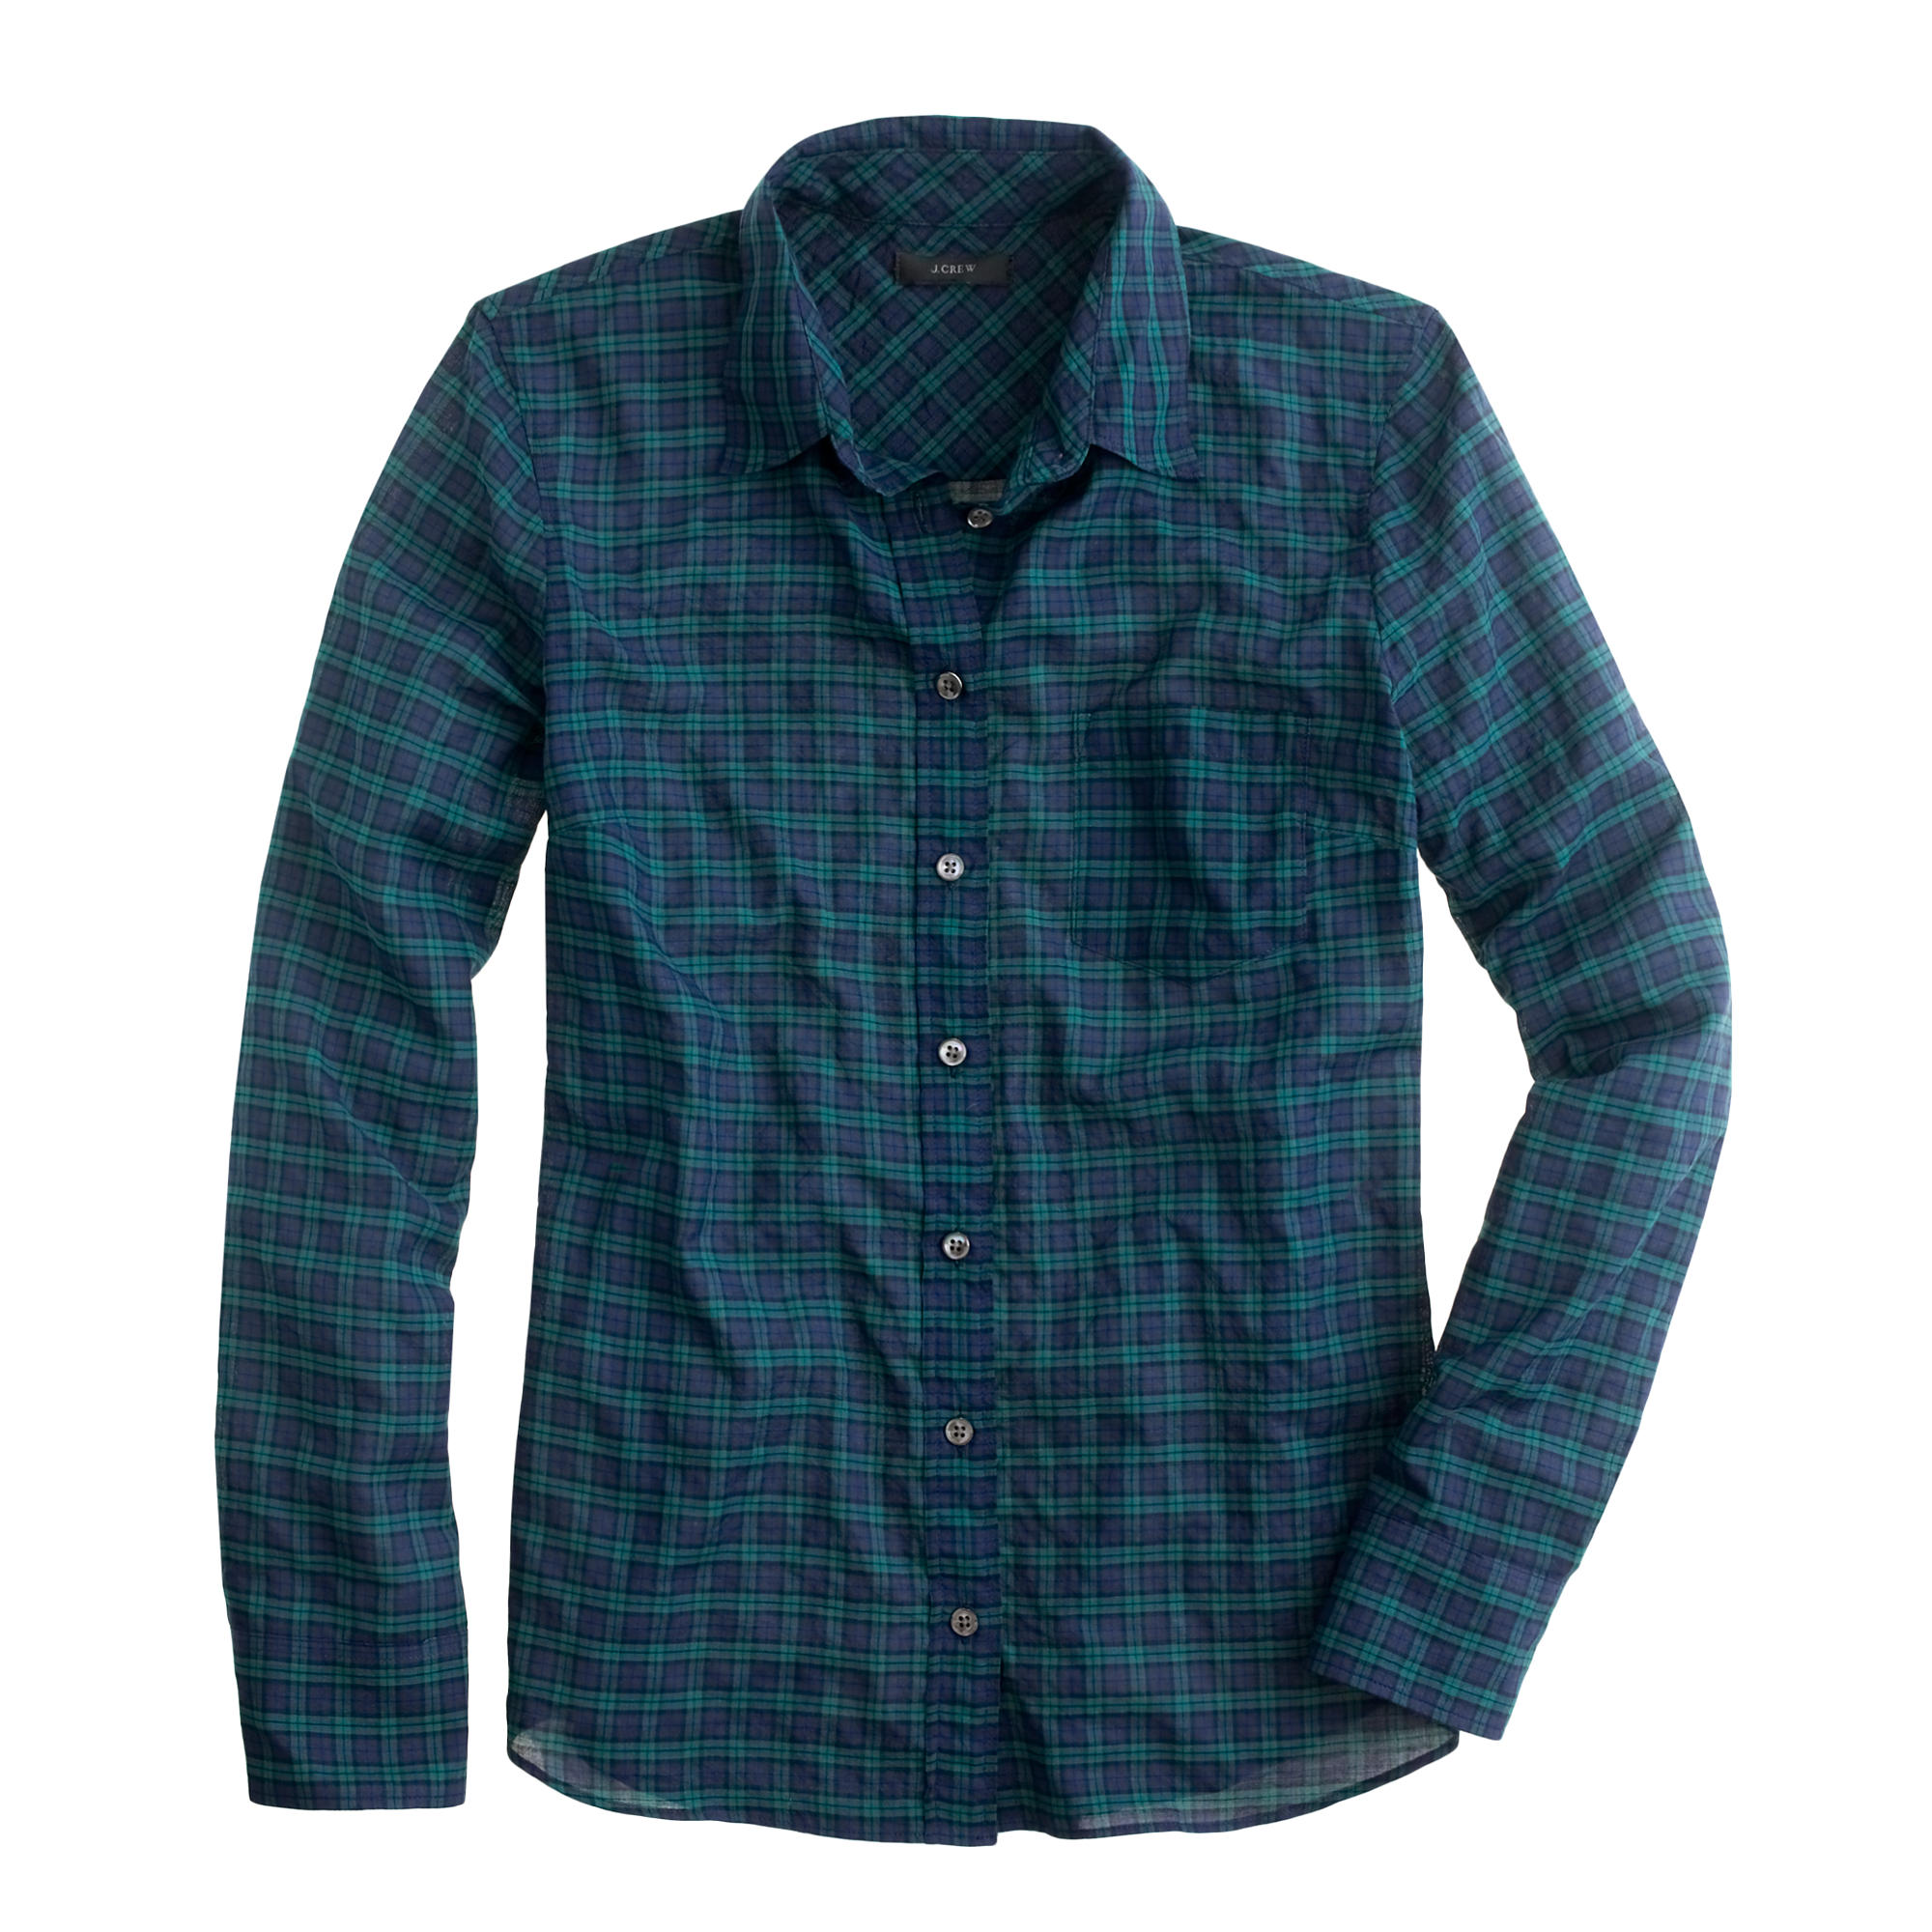 41 results for black watch tartan shirt Save black watch tartan shirt to get e-mail alerts and updates on your eBay Feed. Unfollow black watch tartan shirt to stop getting updates on your eBay feed.